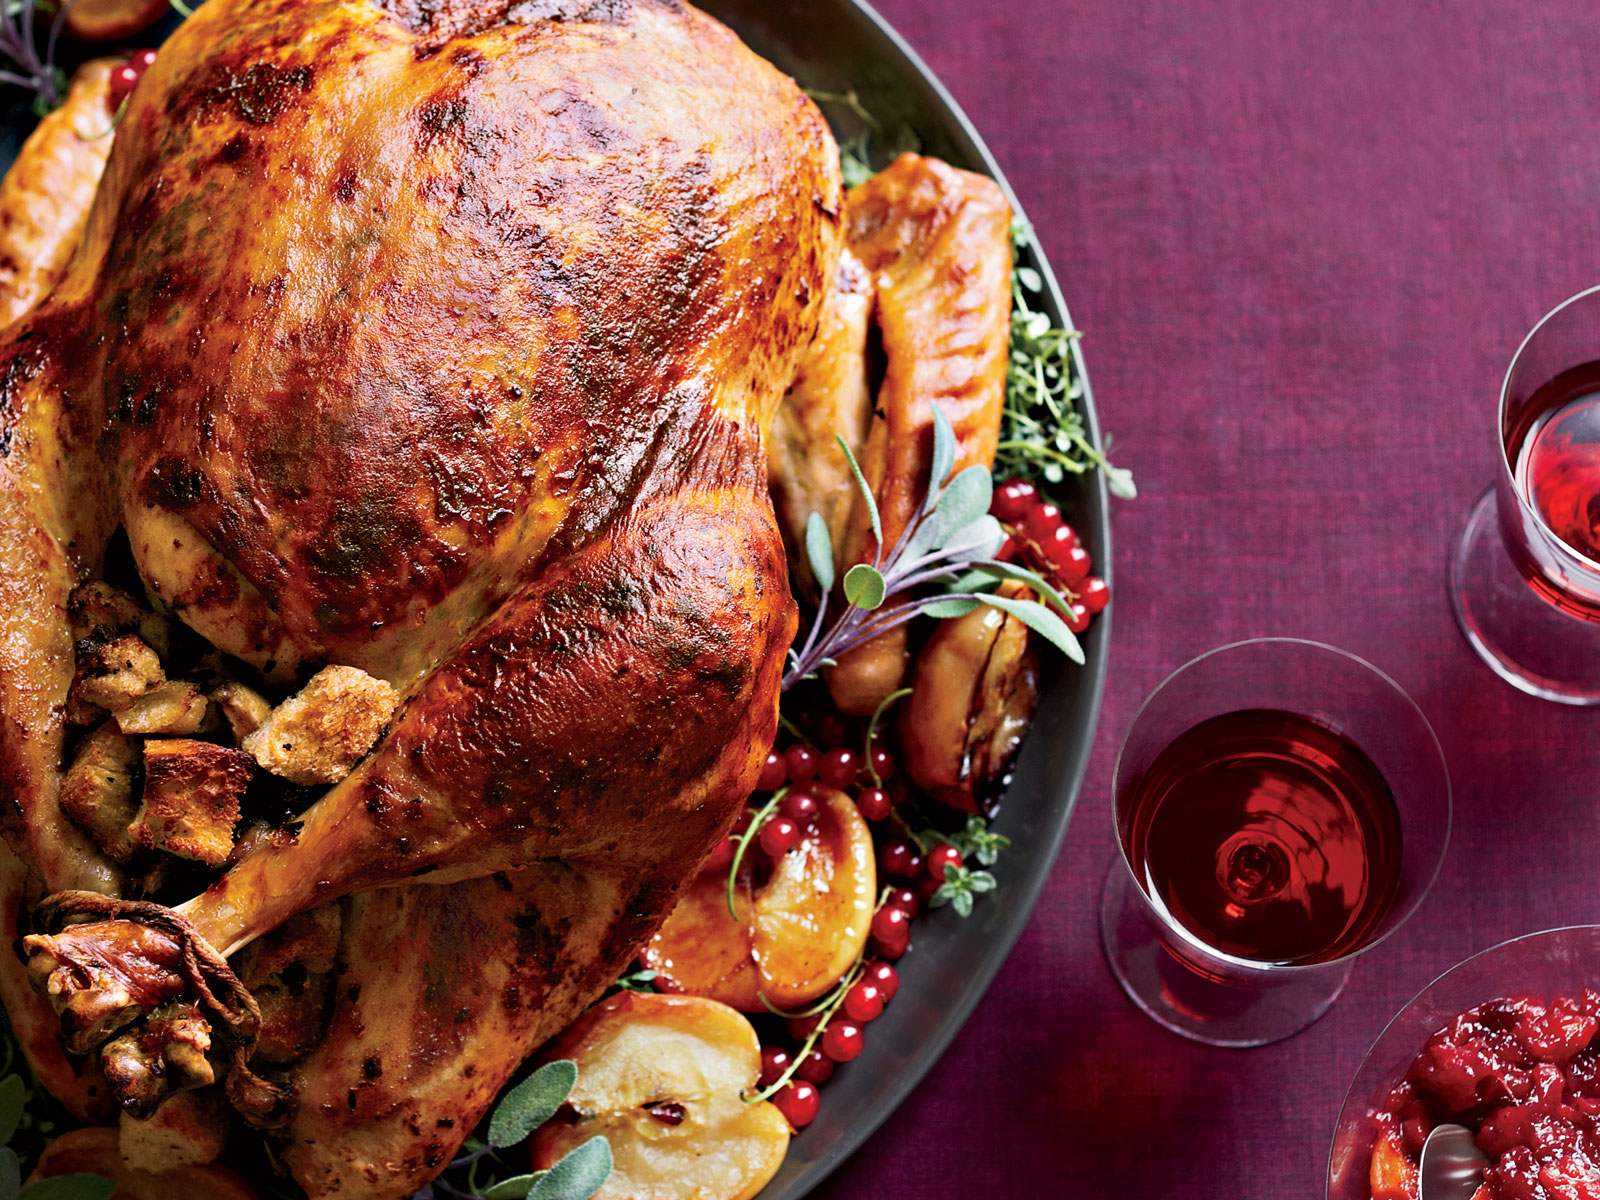 All the Ready-Made Thanksgiving Meals (and Meal Kits!) You Still Have Time to Order